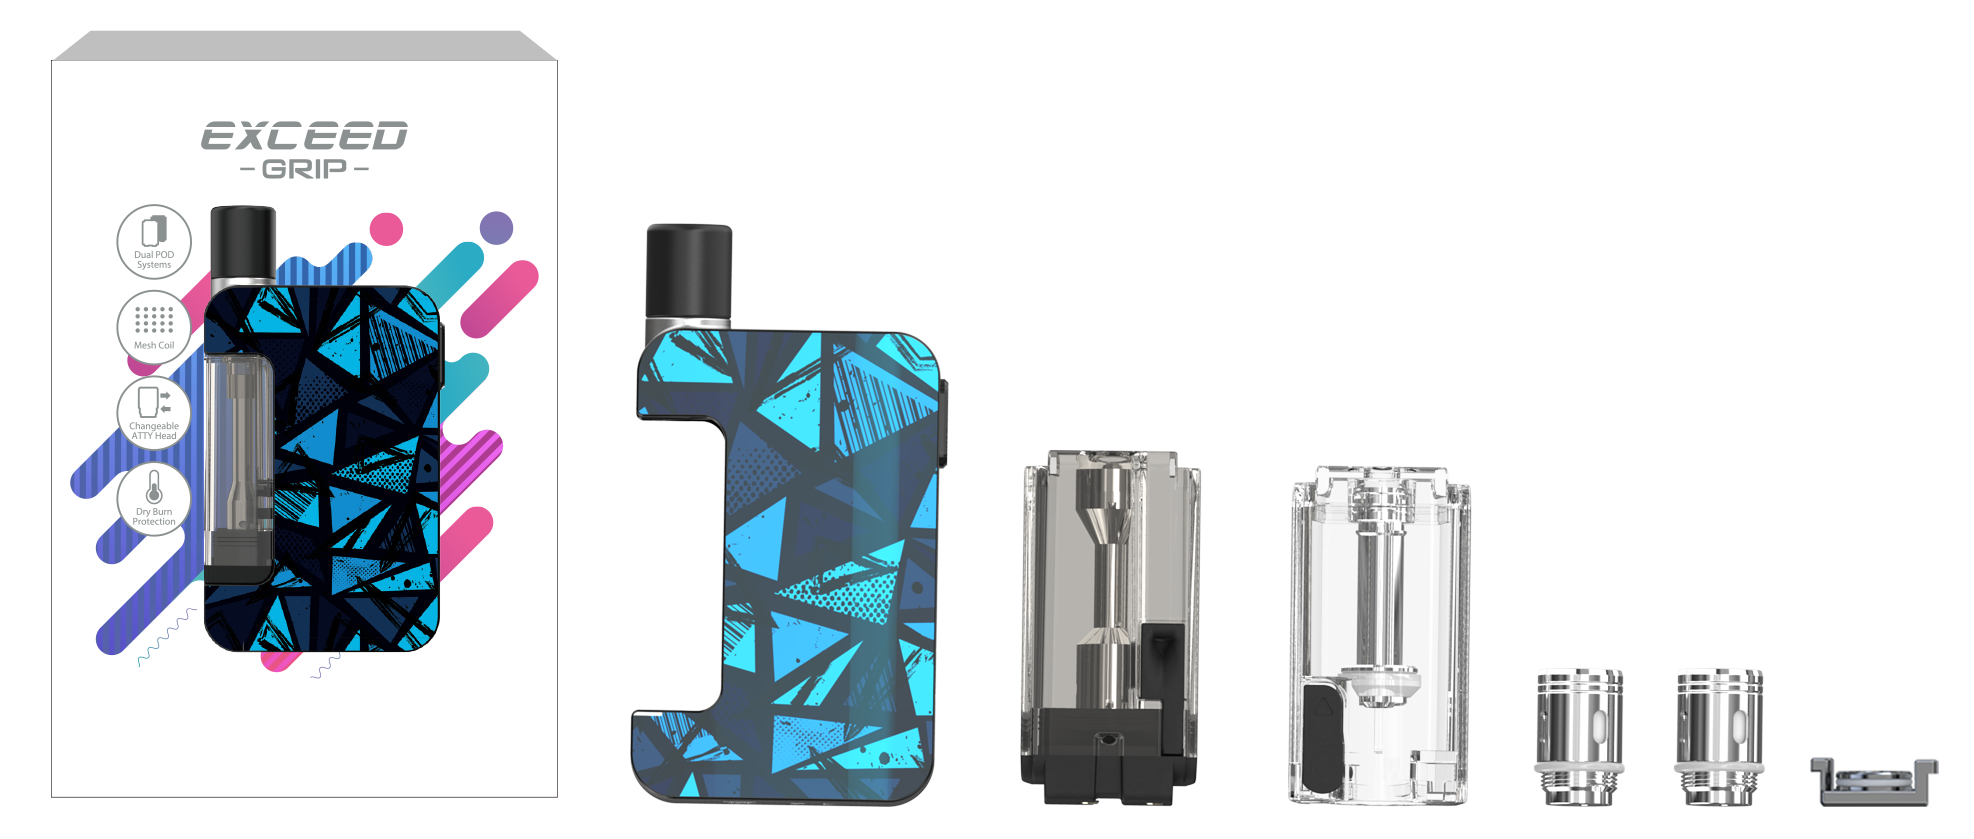 Joyetech Exceed Grip 2ml Kit Package Includes